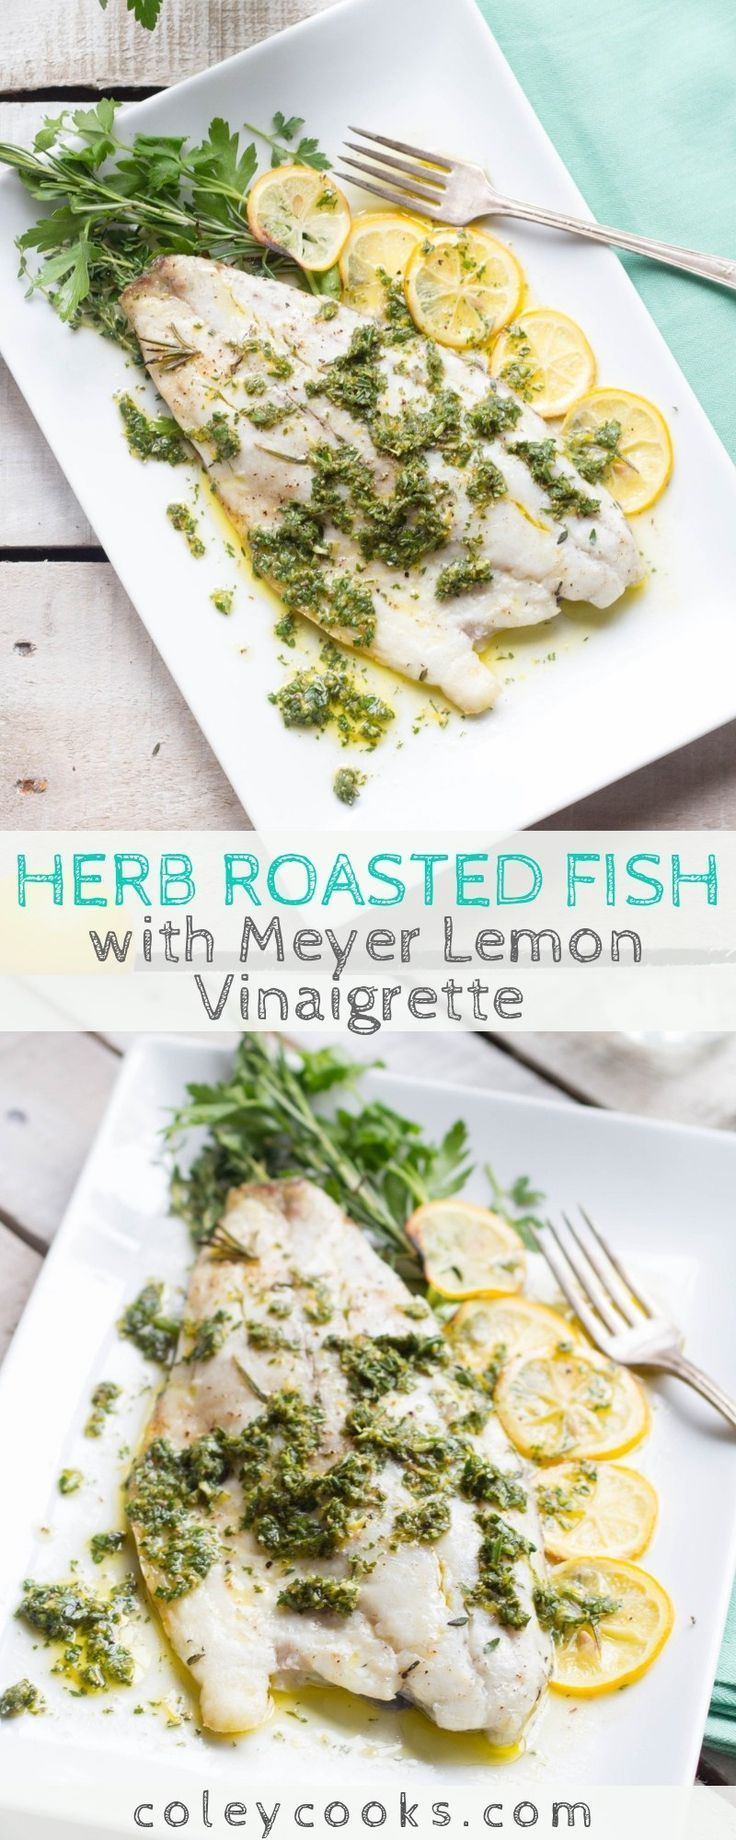 This easy recipe for Herb Roasted Fish with Meyer Lemon Vinaigrette is an easy, healthy recipe that can be made in 20 minutes! Adaptable to many different types of fish. |